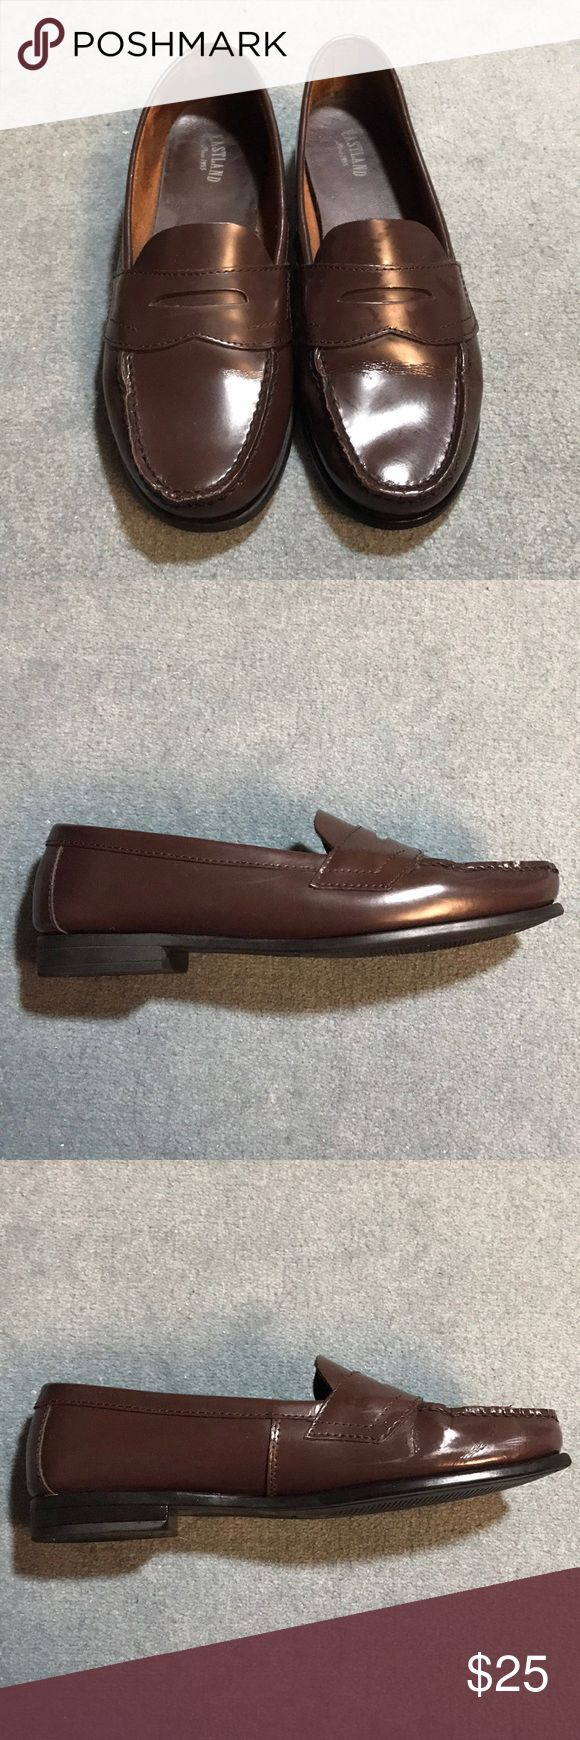 Eastland Classic II penny loafer Eastland Classic II penny loafer, burgundy leather upper, flexible rubber outside, 7/8 inch heel, medium width, pre-loved condition, some wear on heel pictured Eastland Shoes Flats & Loafers